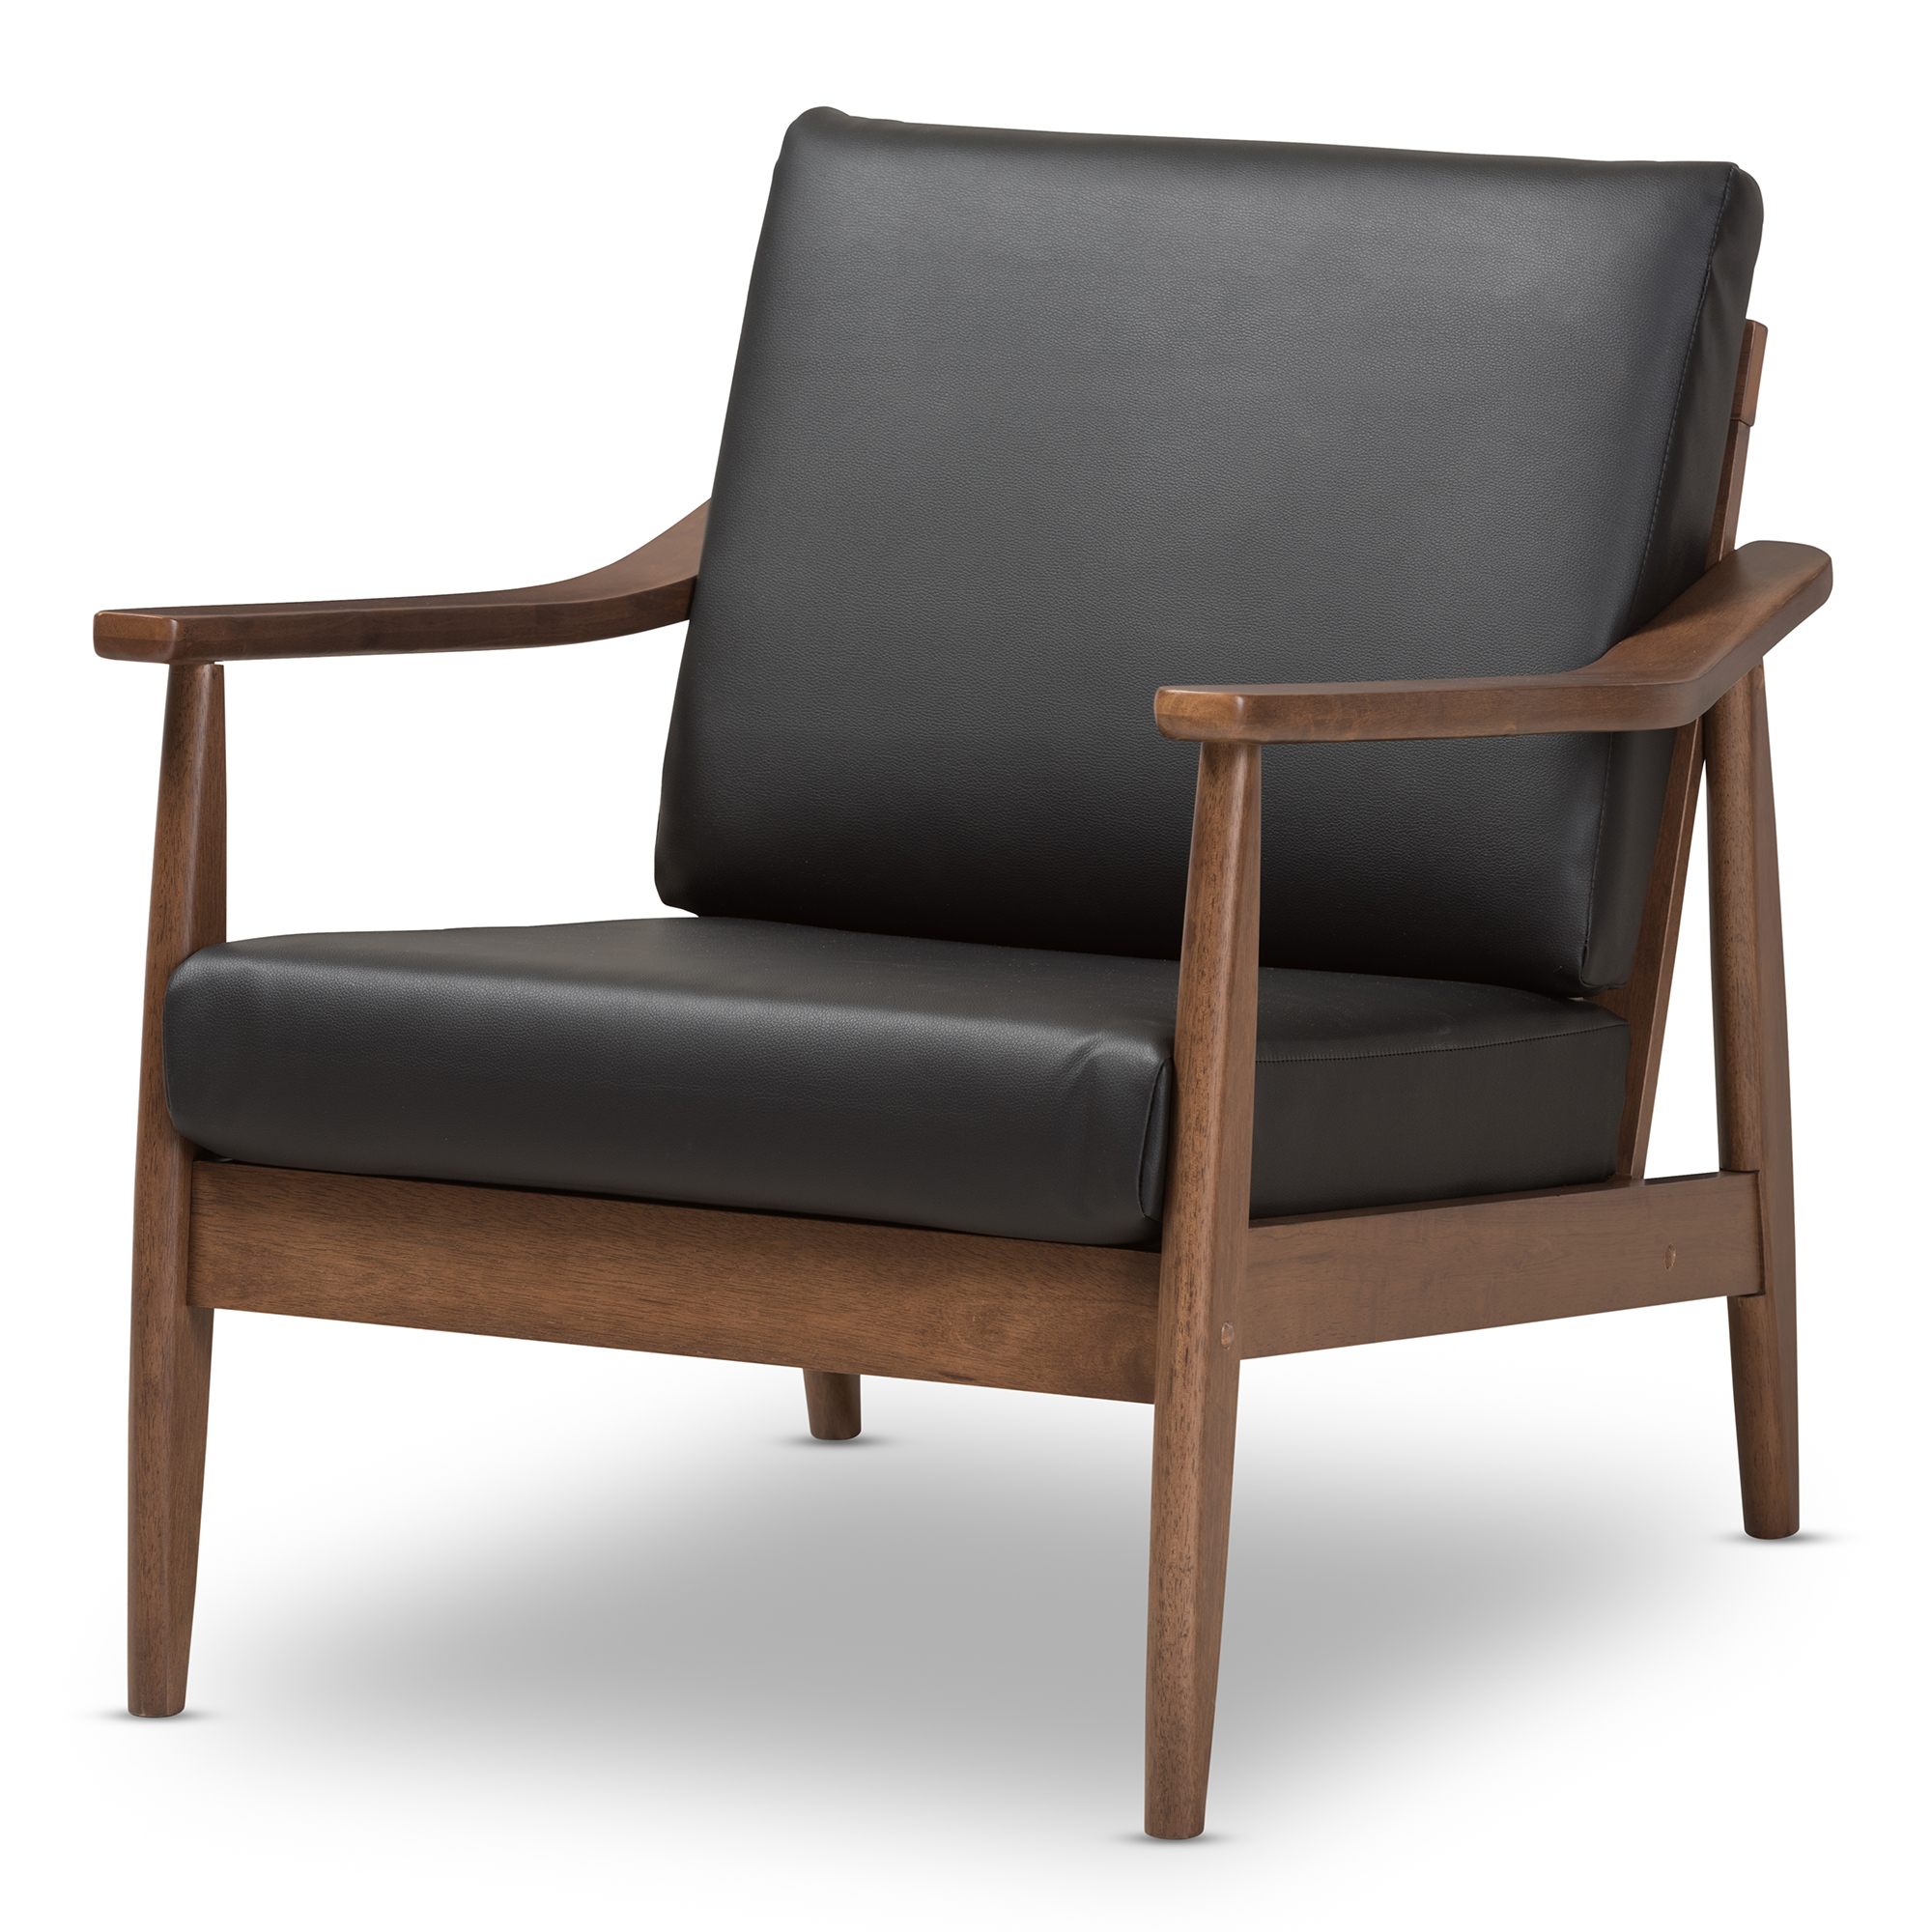 baxton studio venza midcentury modern walnut wood black faux leather lounge chair affordable modern